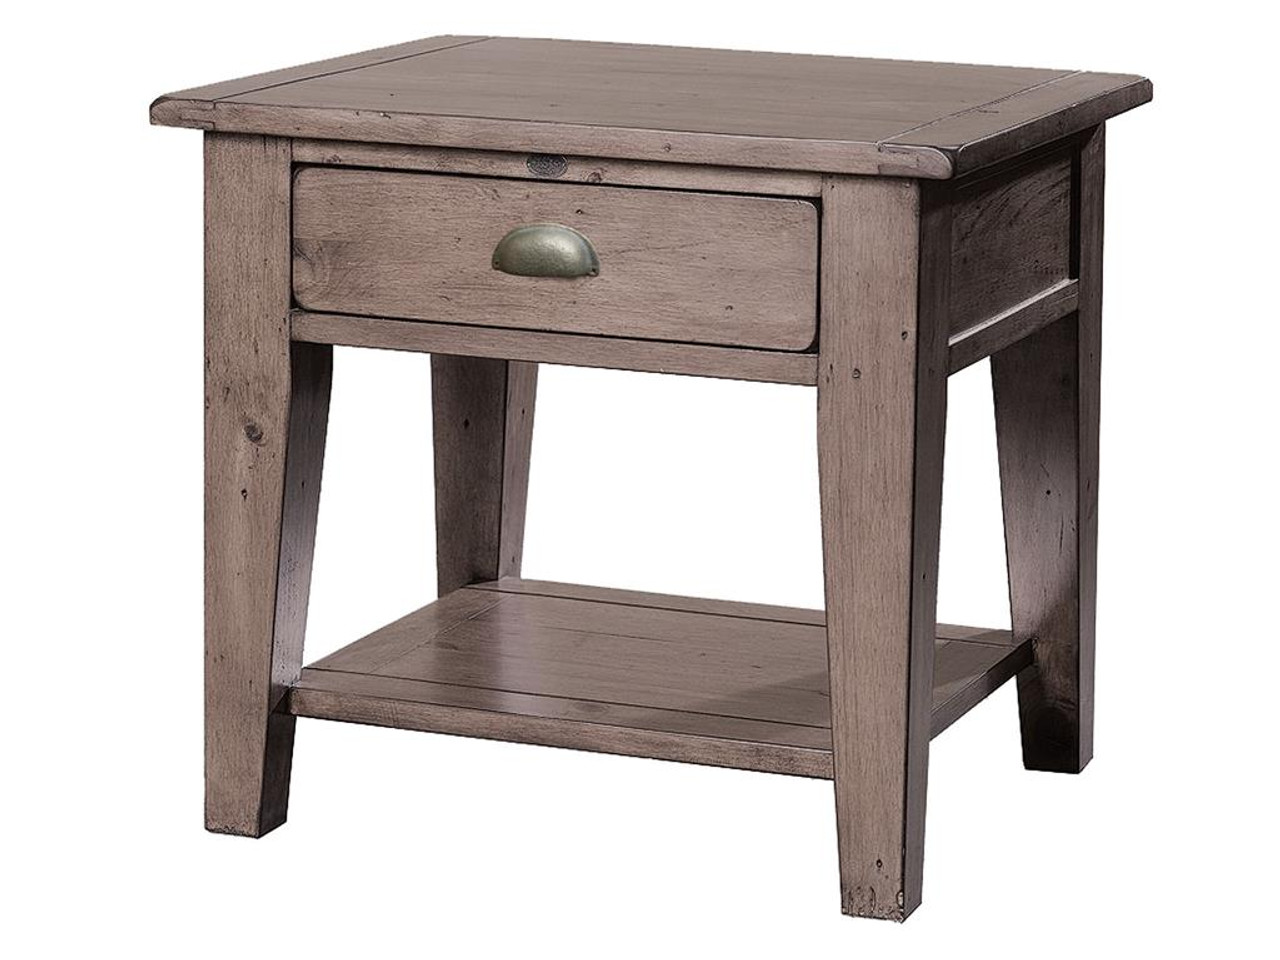 Coastal Solid Wood Rustic Side Table with 1 Drawer